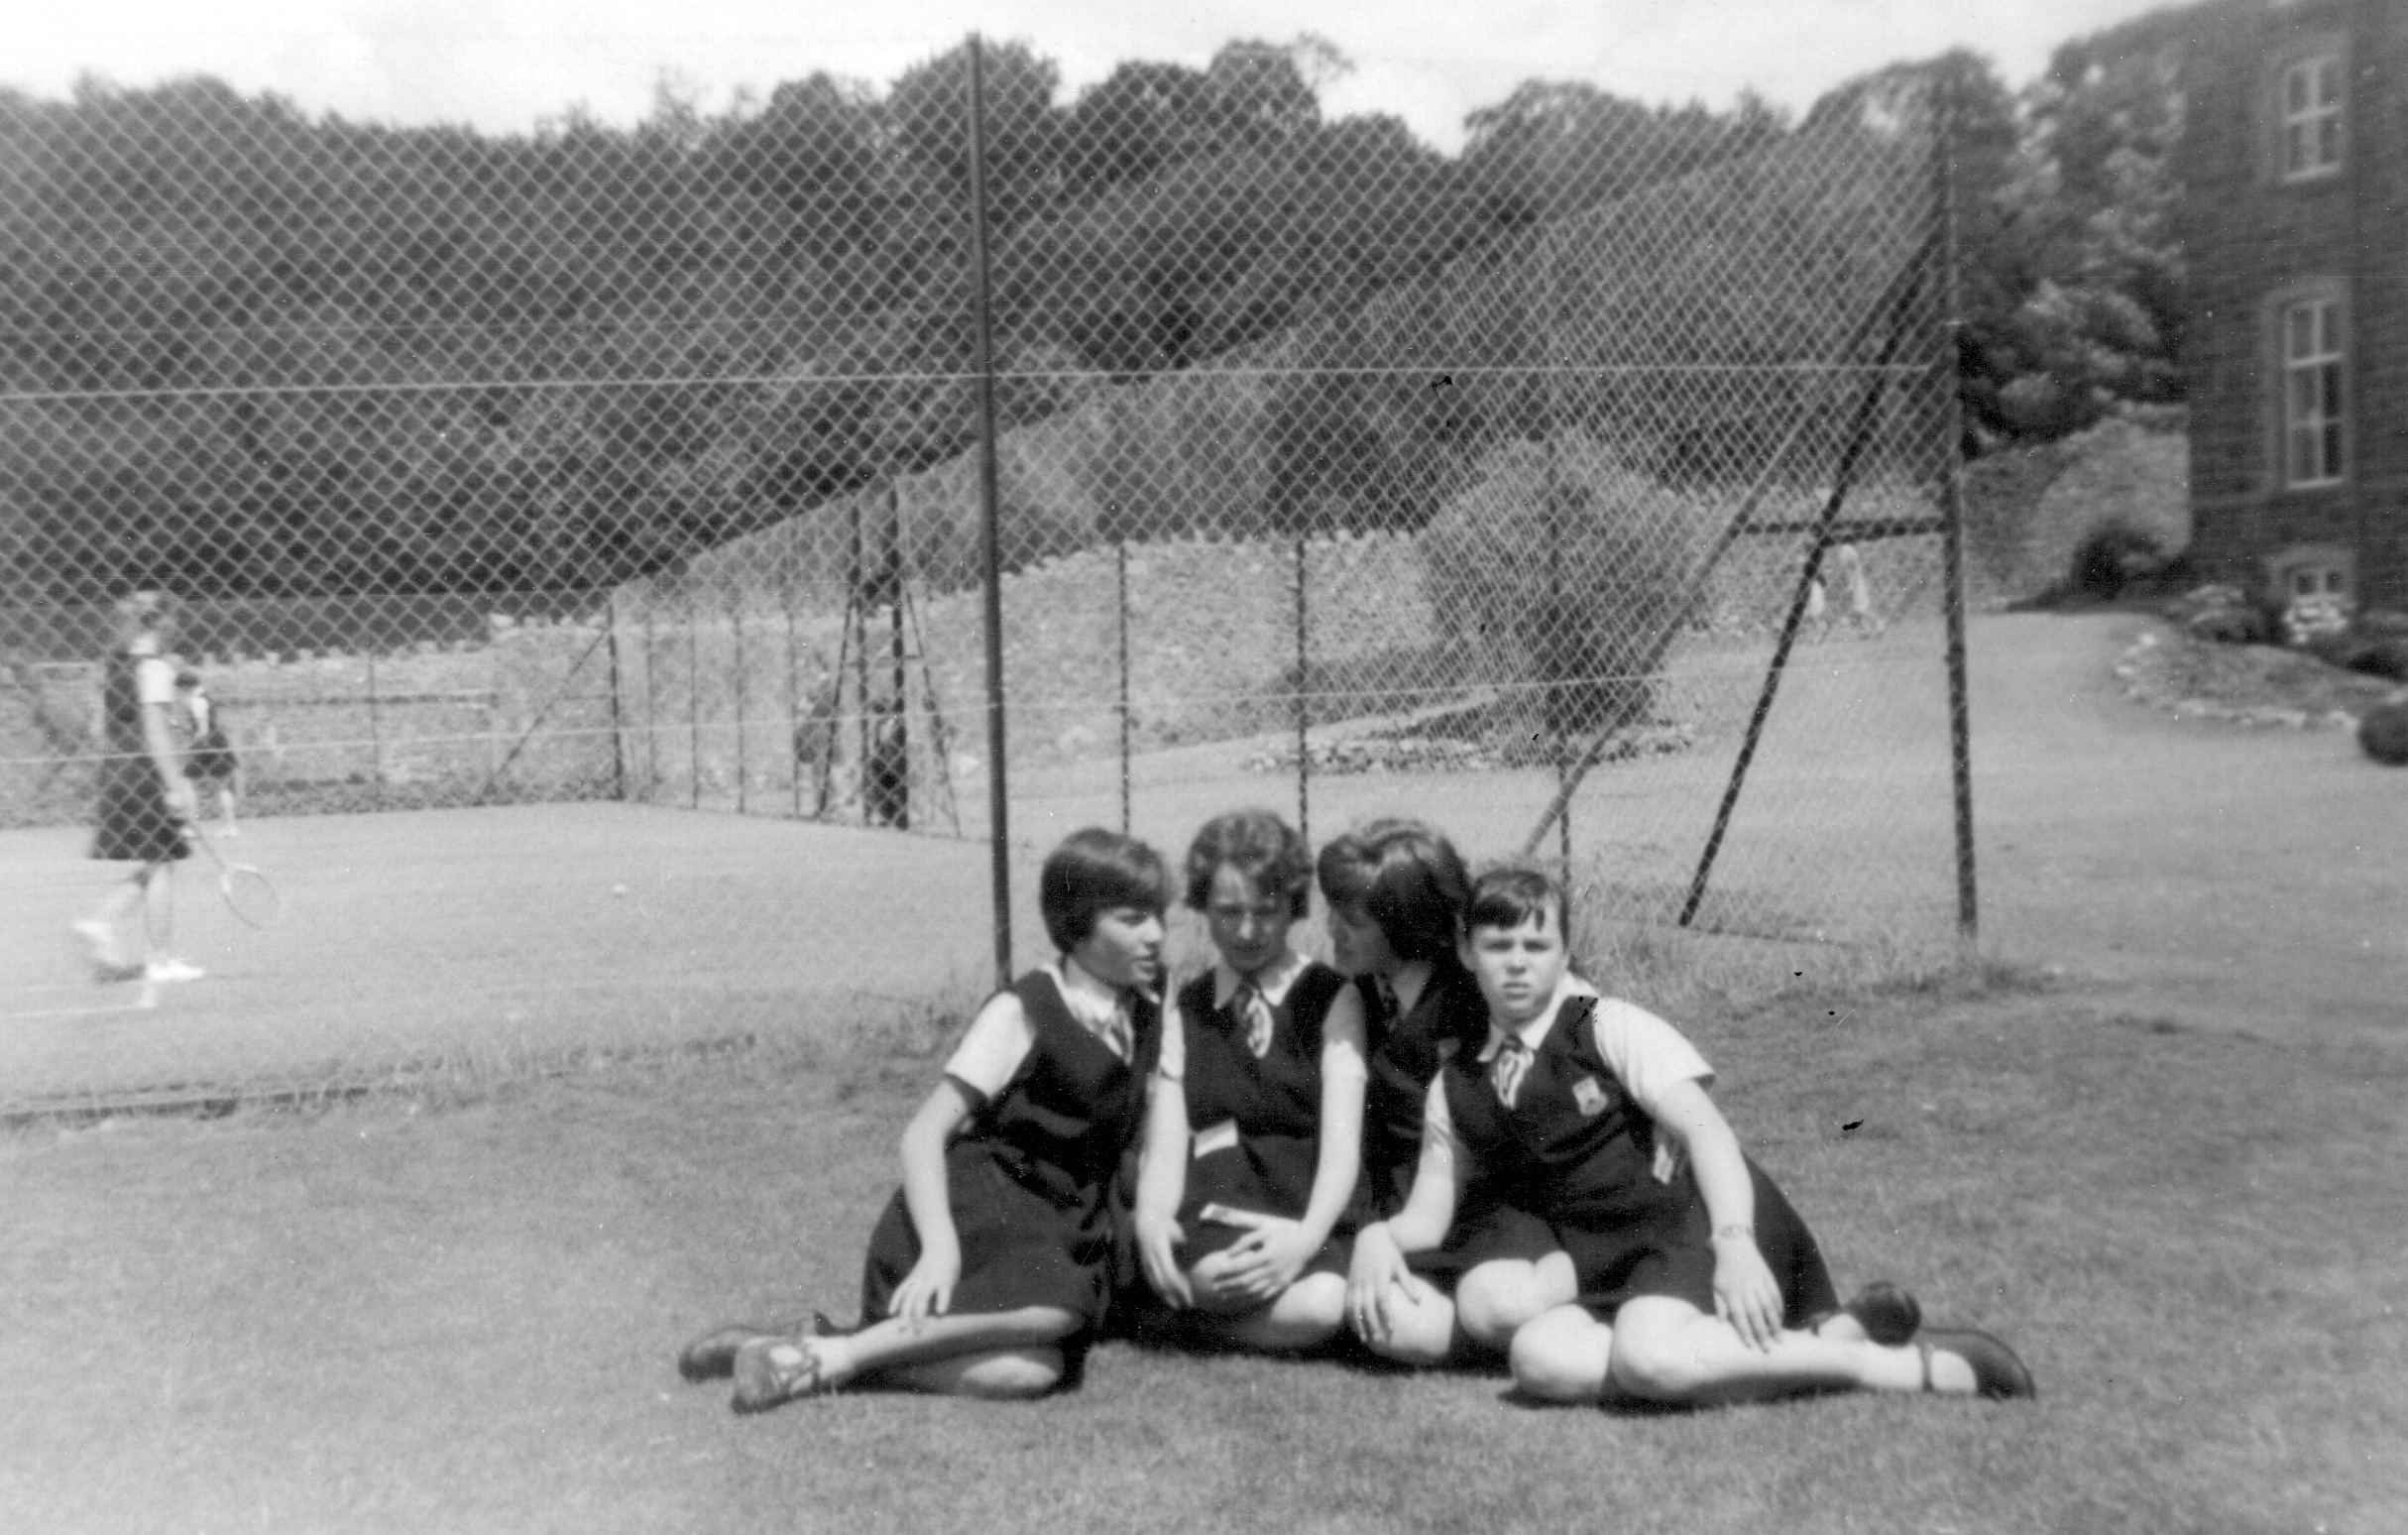 Summer on the Hockey Pitch, 1960